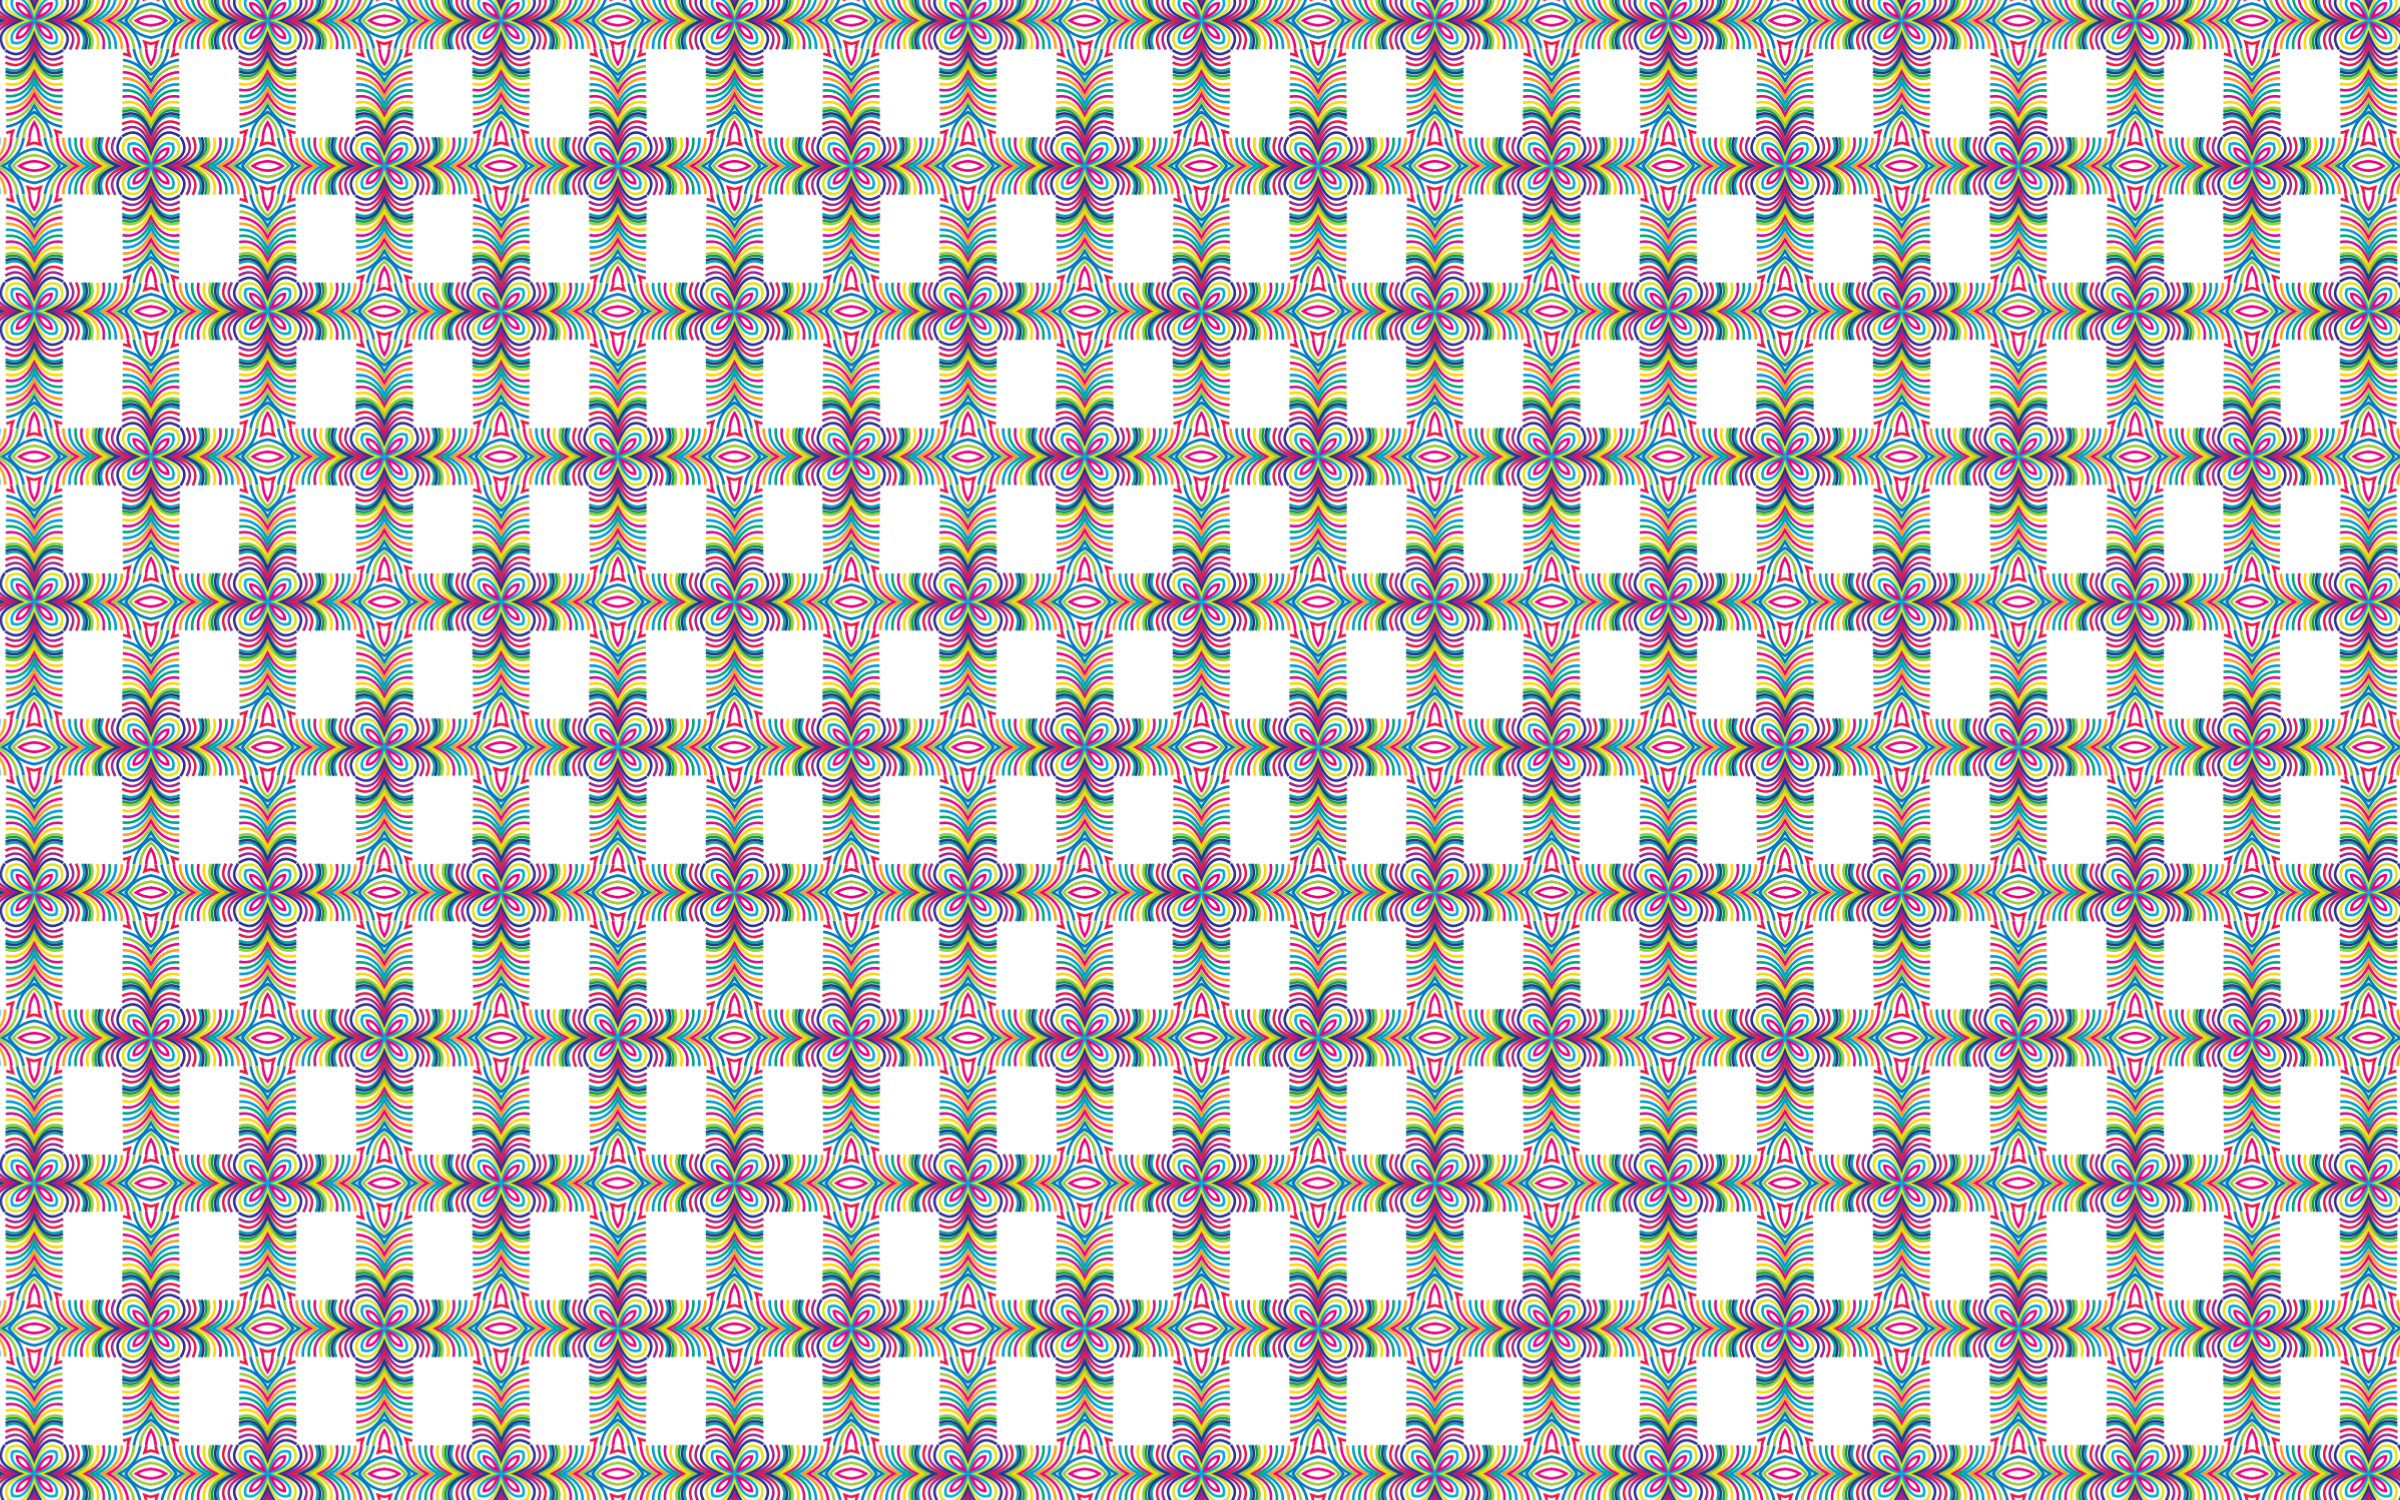 Seamless Prismatic Waves Pattern 3 by GDJ